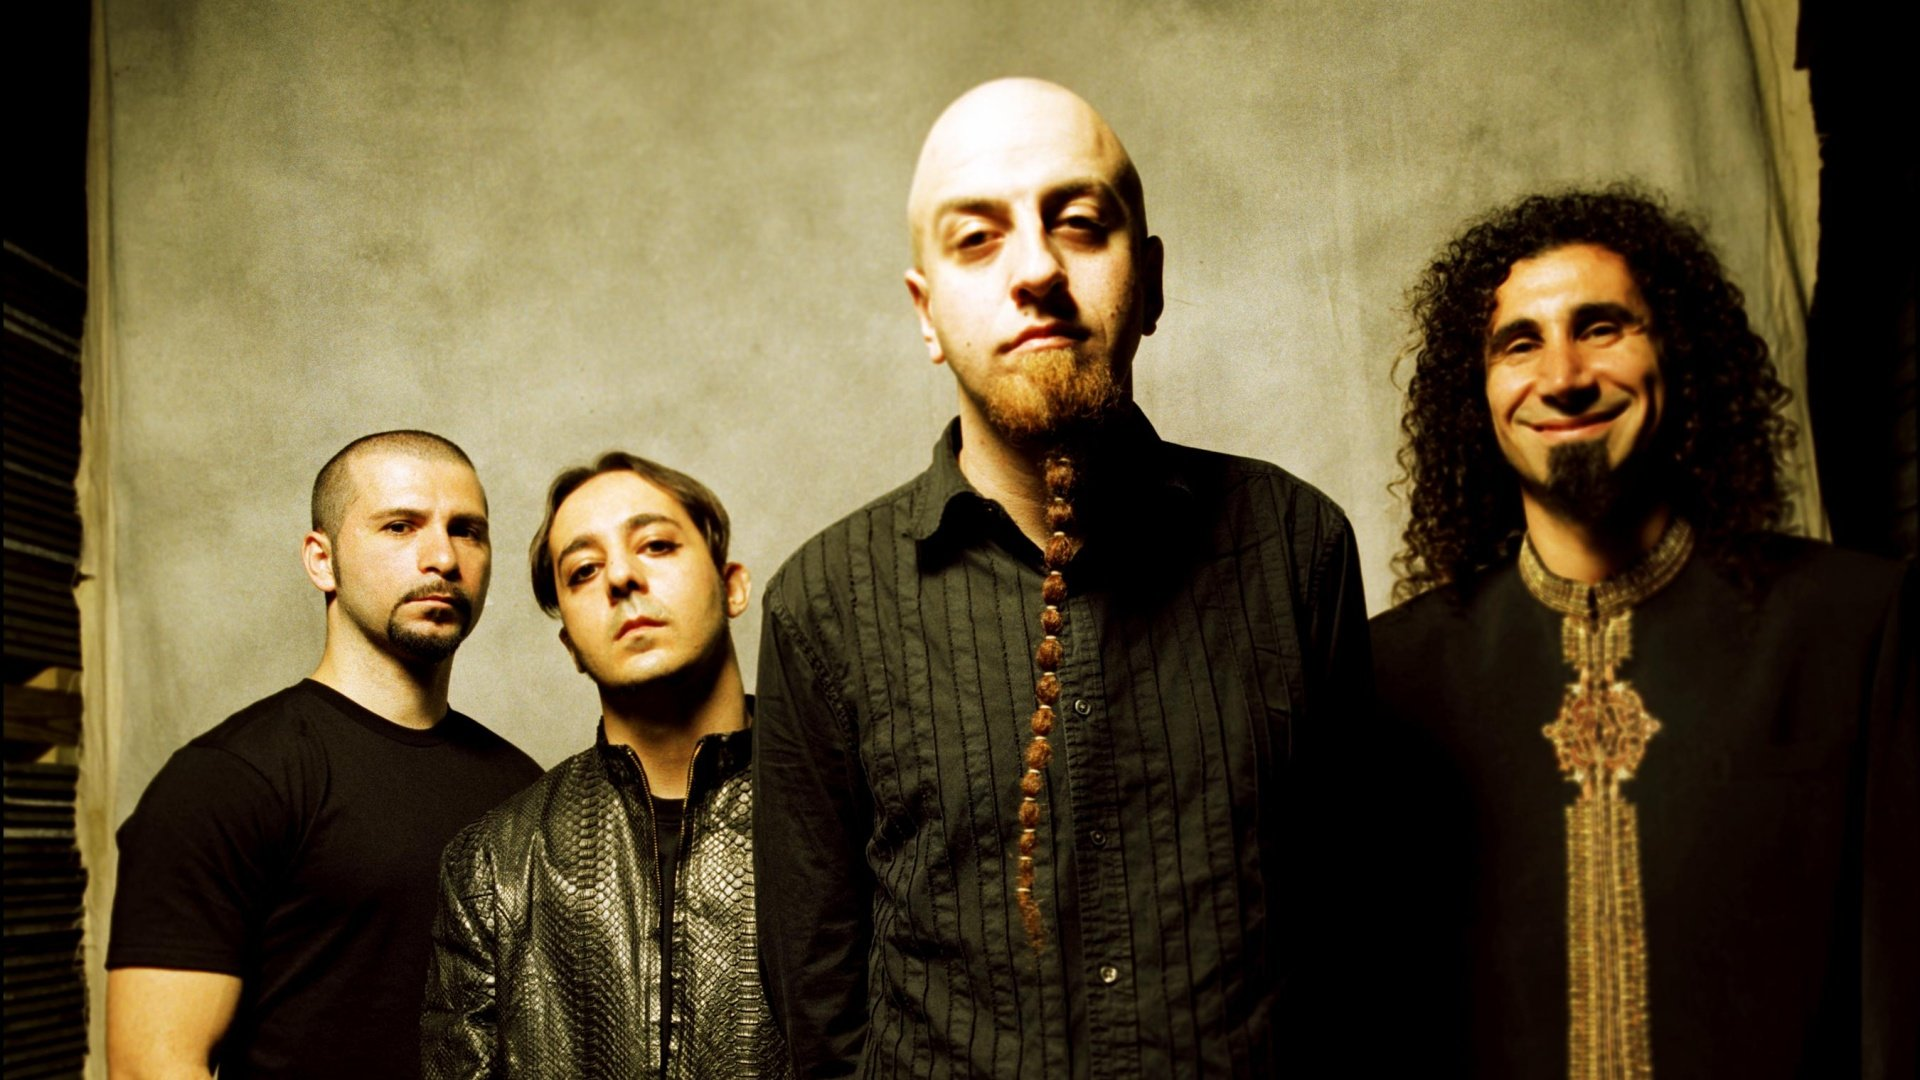 Download Full Hd System Of A Down Desktop Wallpaper Id 9029 For Free